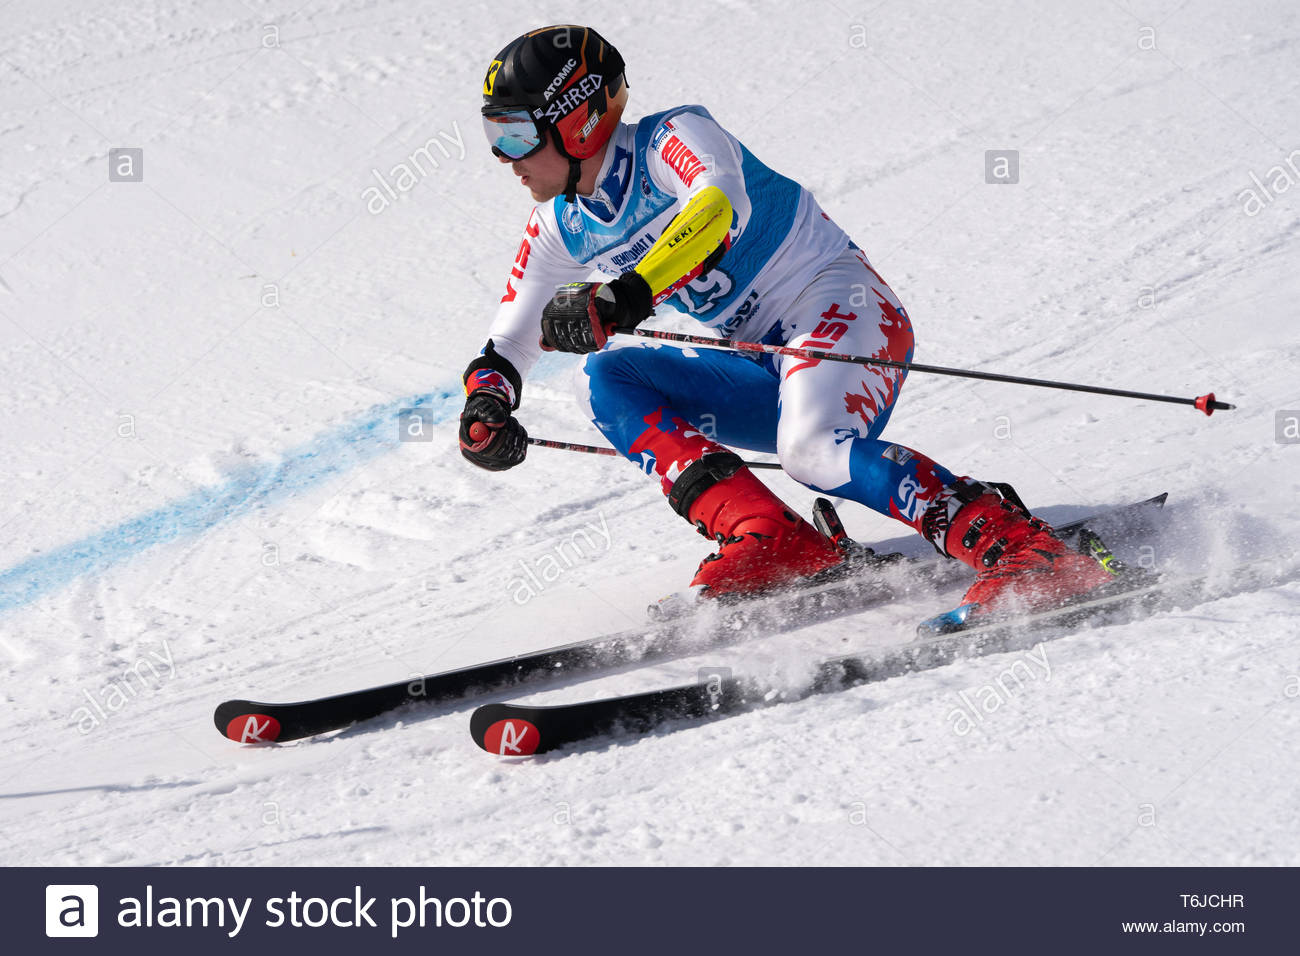 KAMCHATKA PENINSULA, RUSSIA - APR 1, 2019: Mountain skier Konstantin Kablukov (Kamchatka) skiing down slope. Russian Alpine Skiing Cup, International  - Stock Image